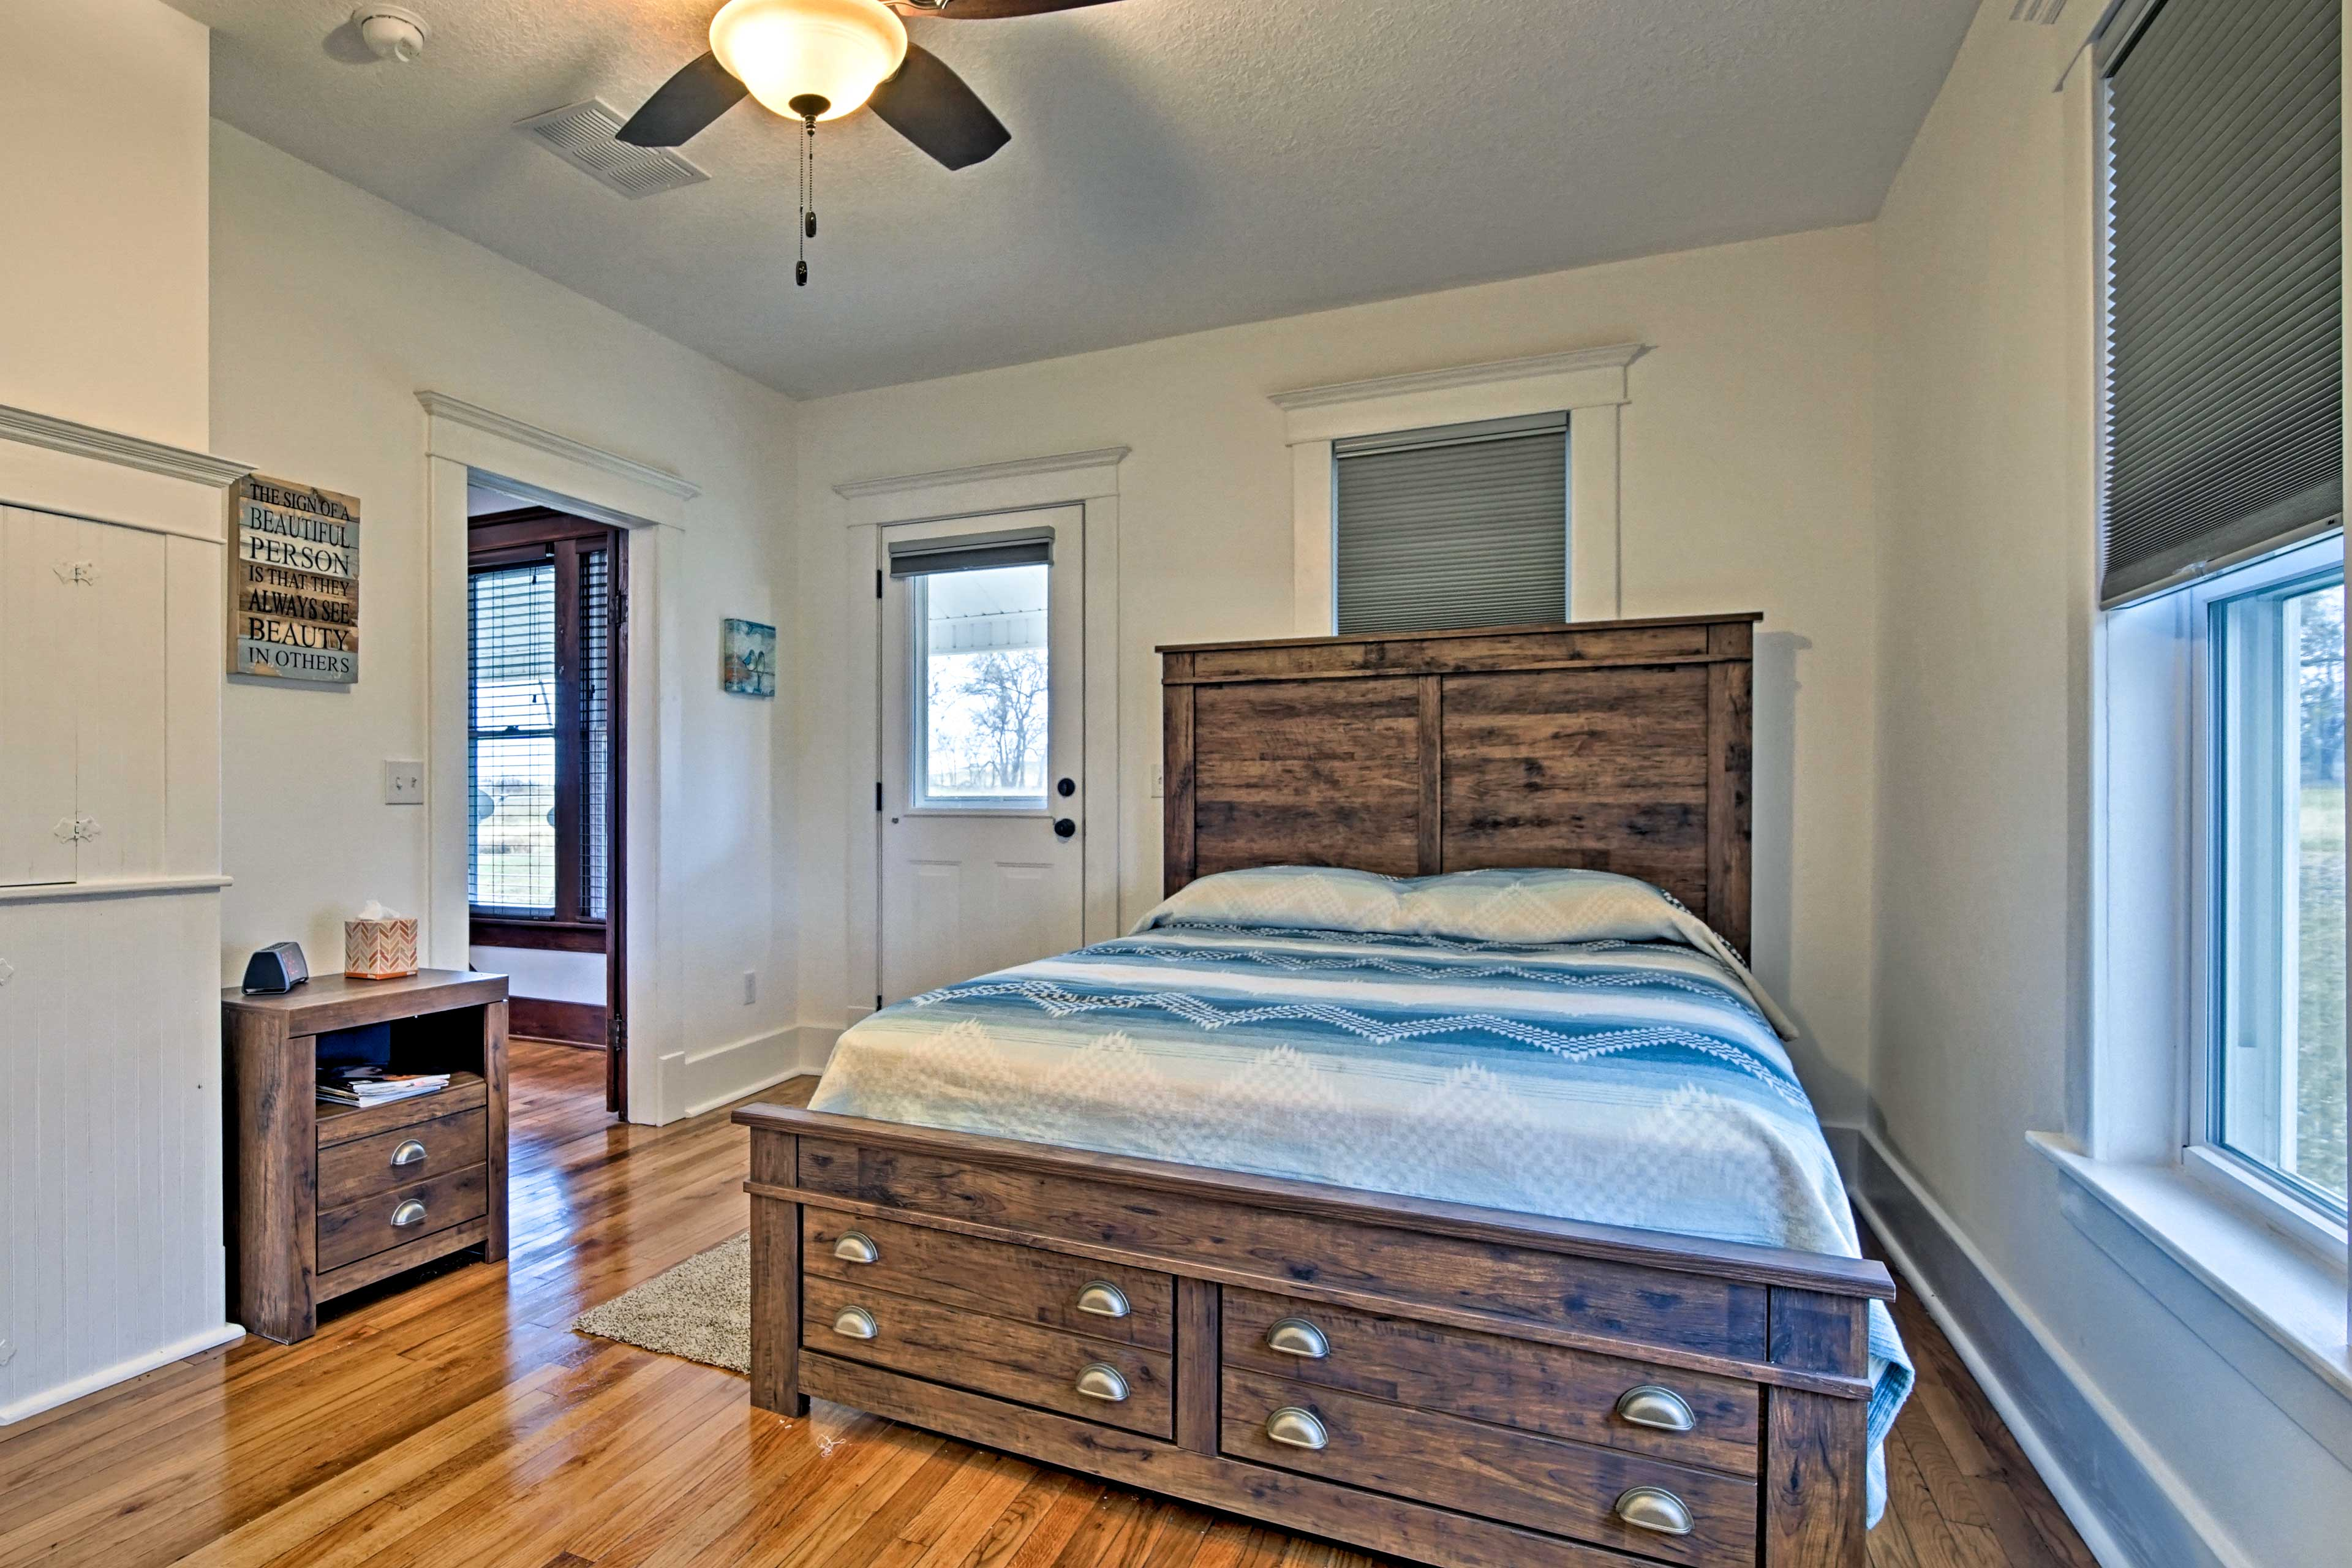 Additional guests will sleep soundly in the second bedroom.